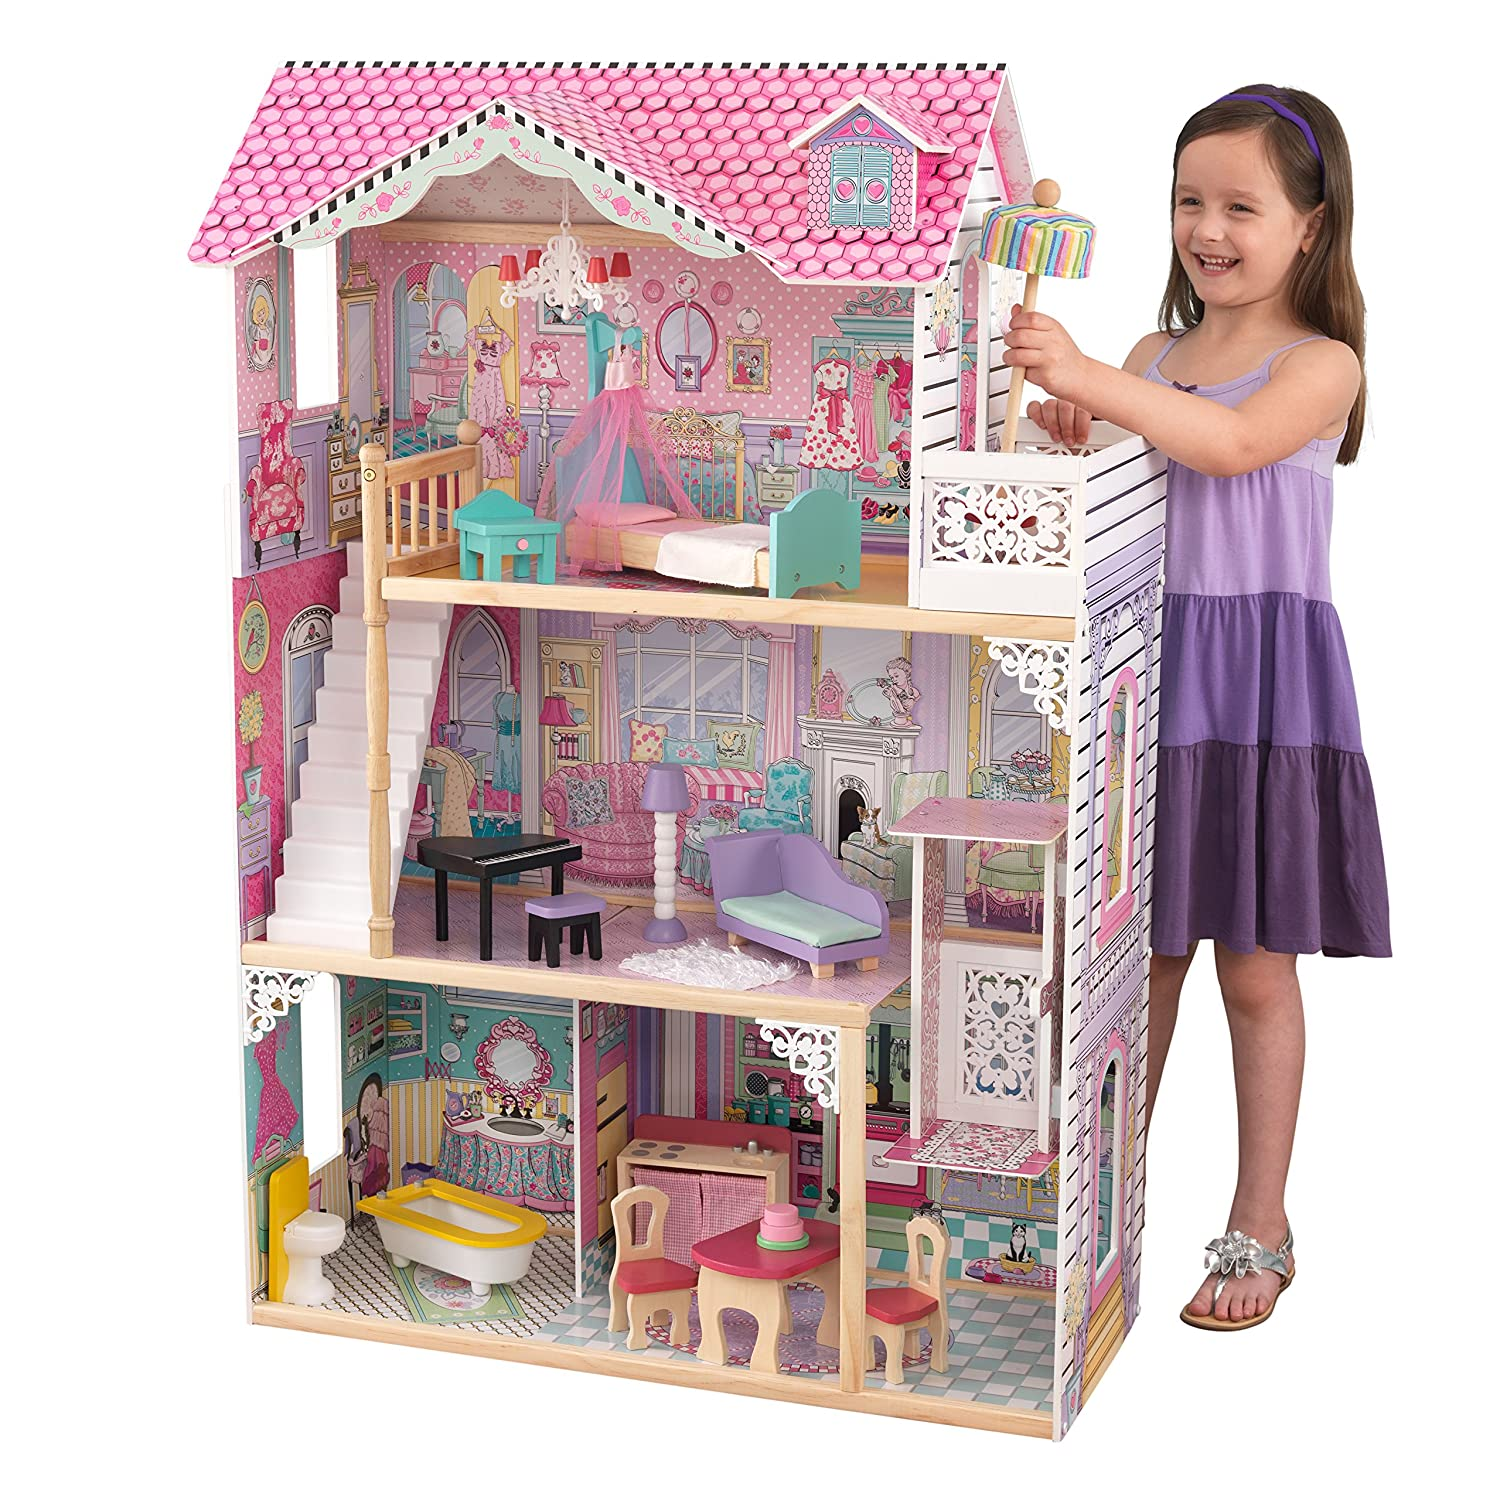 Top 9 Best Dollhouse for Toddlers Reviews in 2021 15